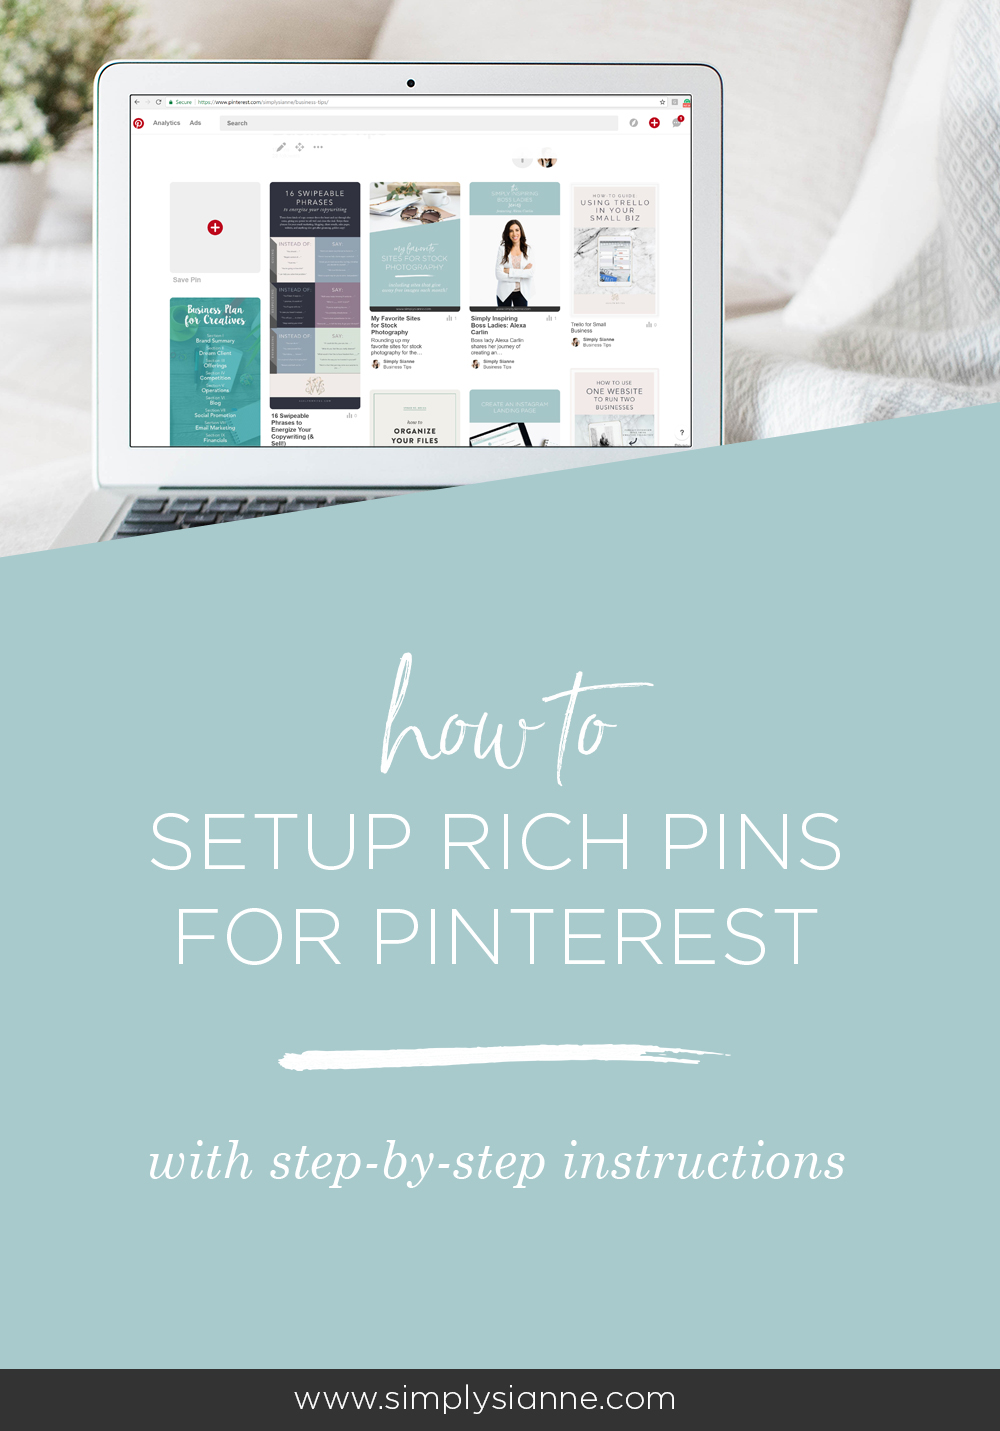 Pinterest is a powerful tool that should be used for your creative business. Get the most out of your content and this platform by enabling rich pins.